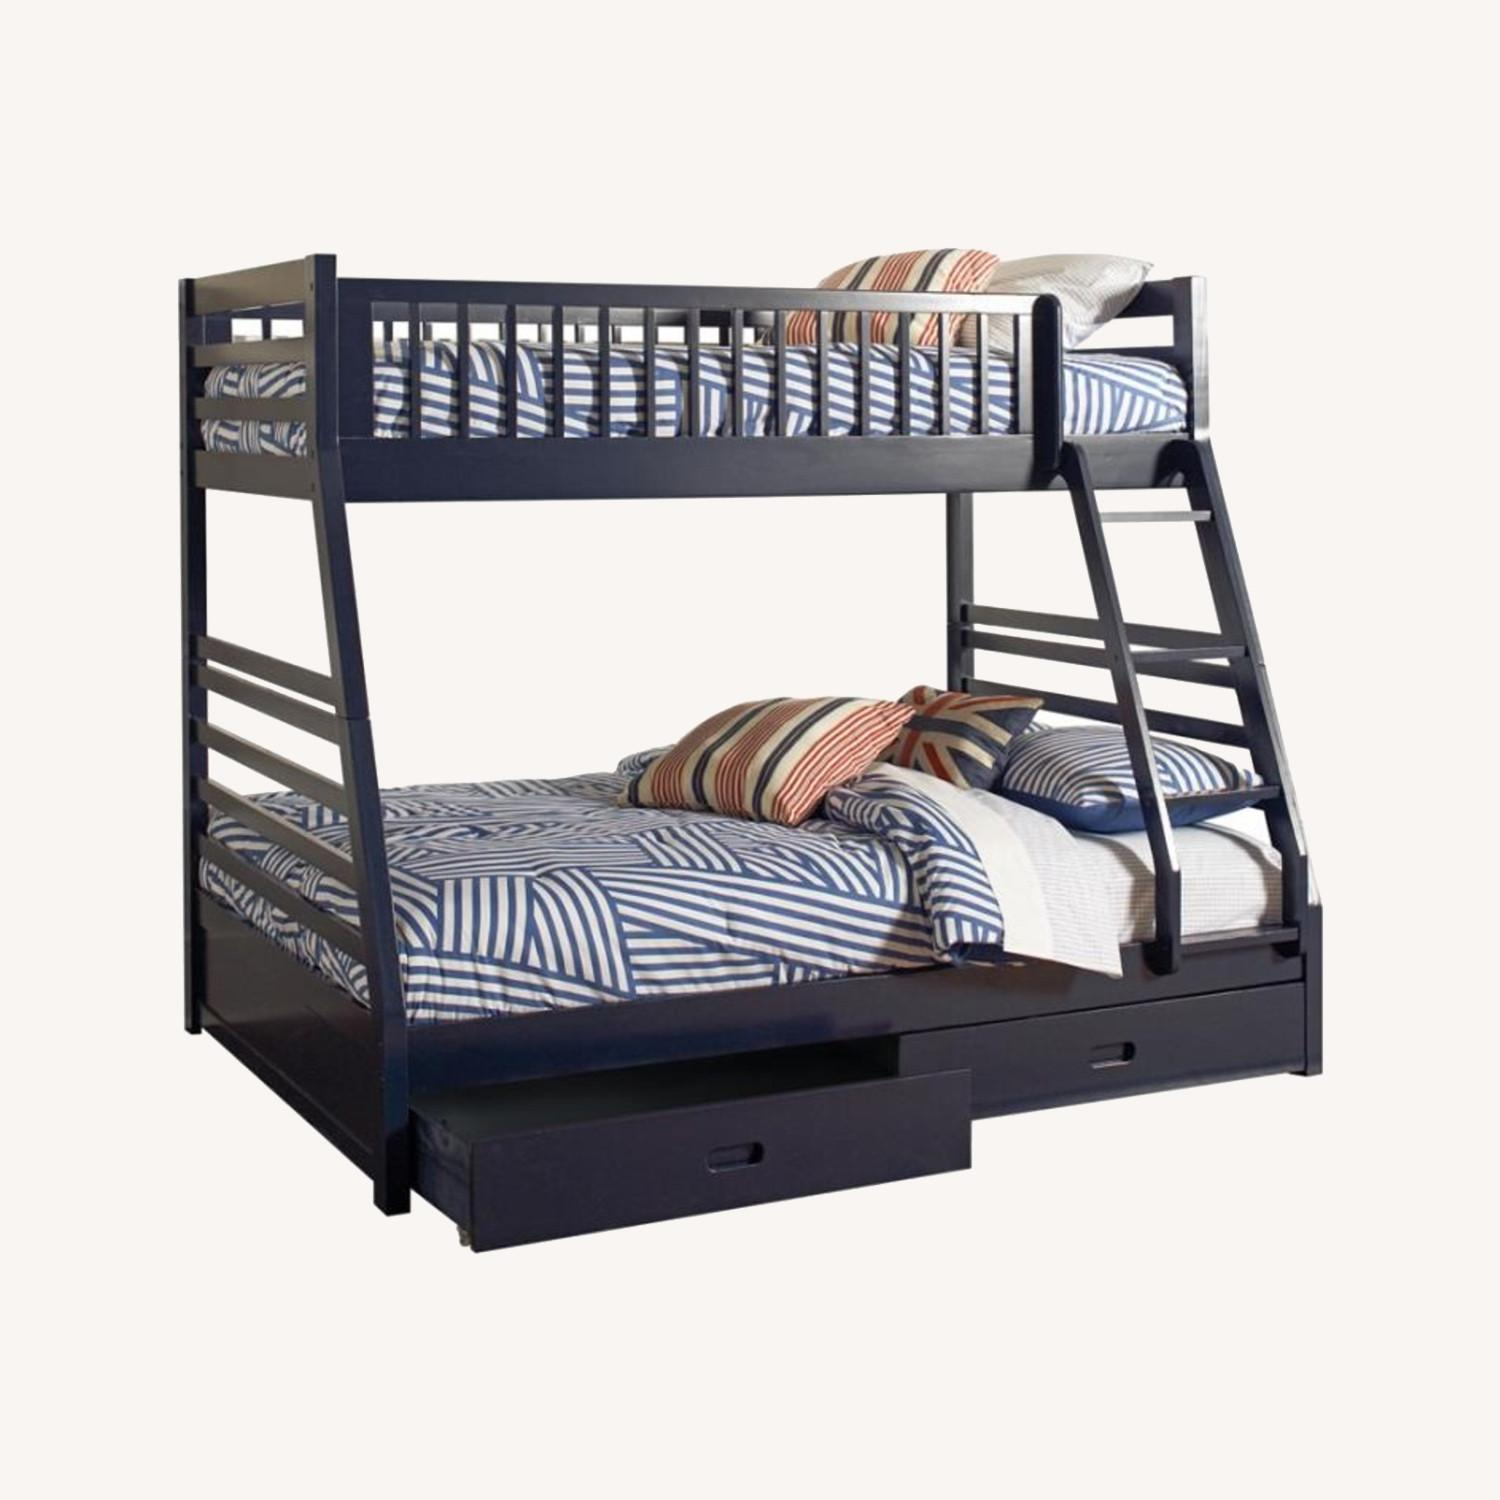 Twin Over Full Bunk Bed In Sleek Navy Blue Finish - image-3